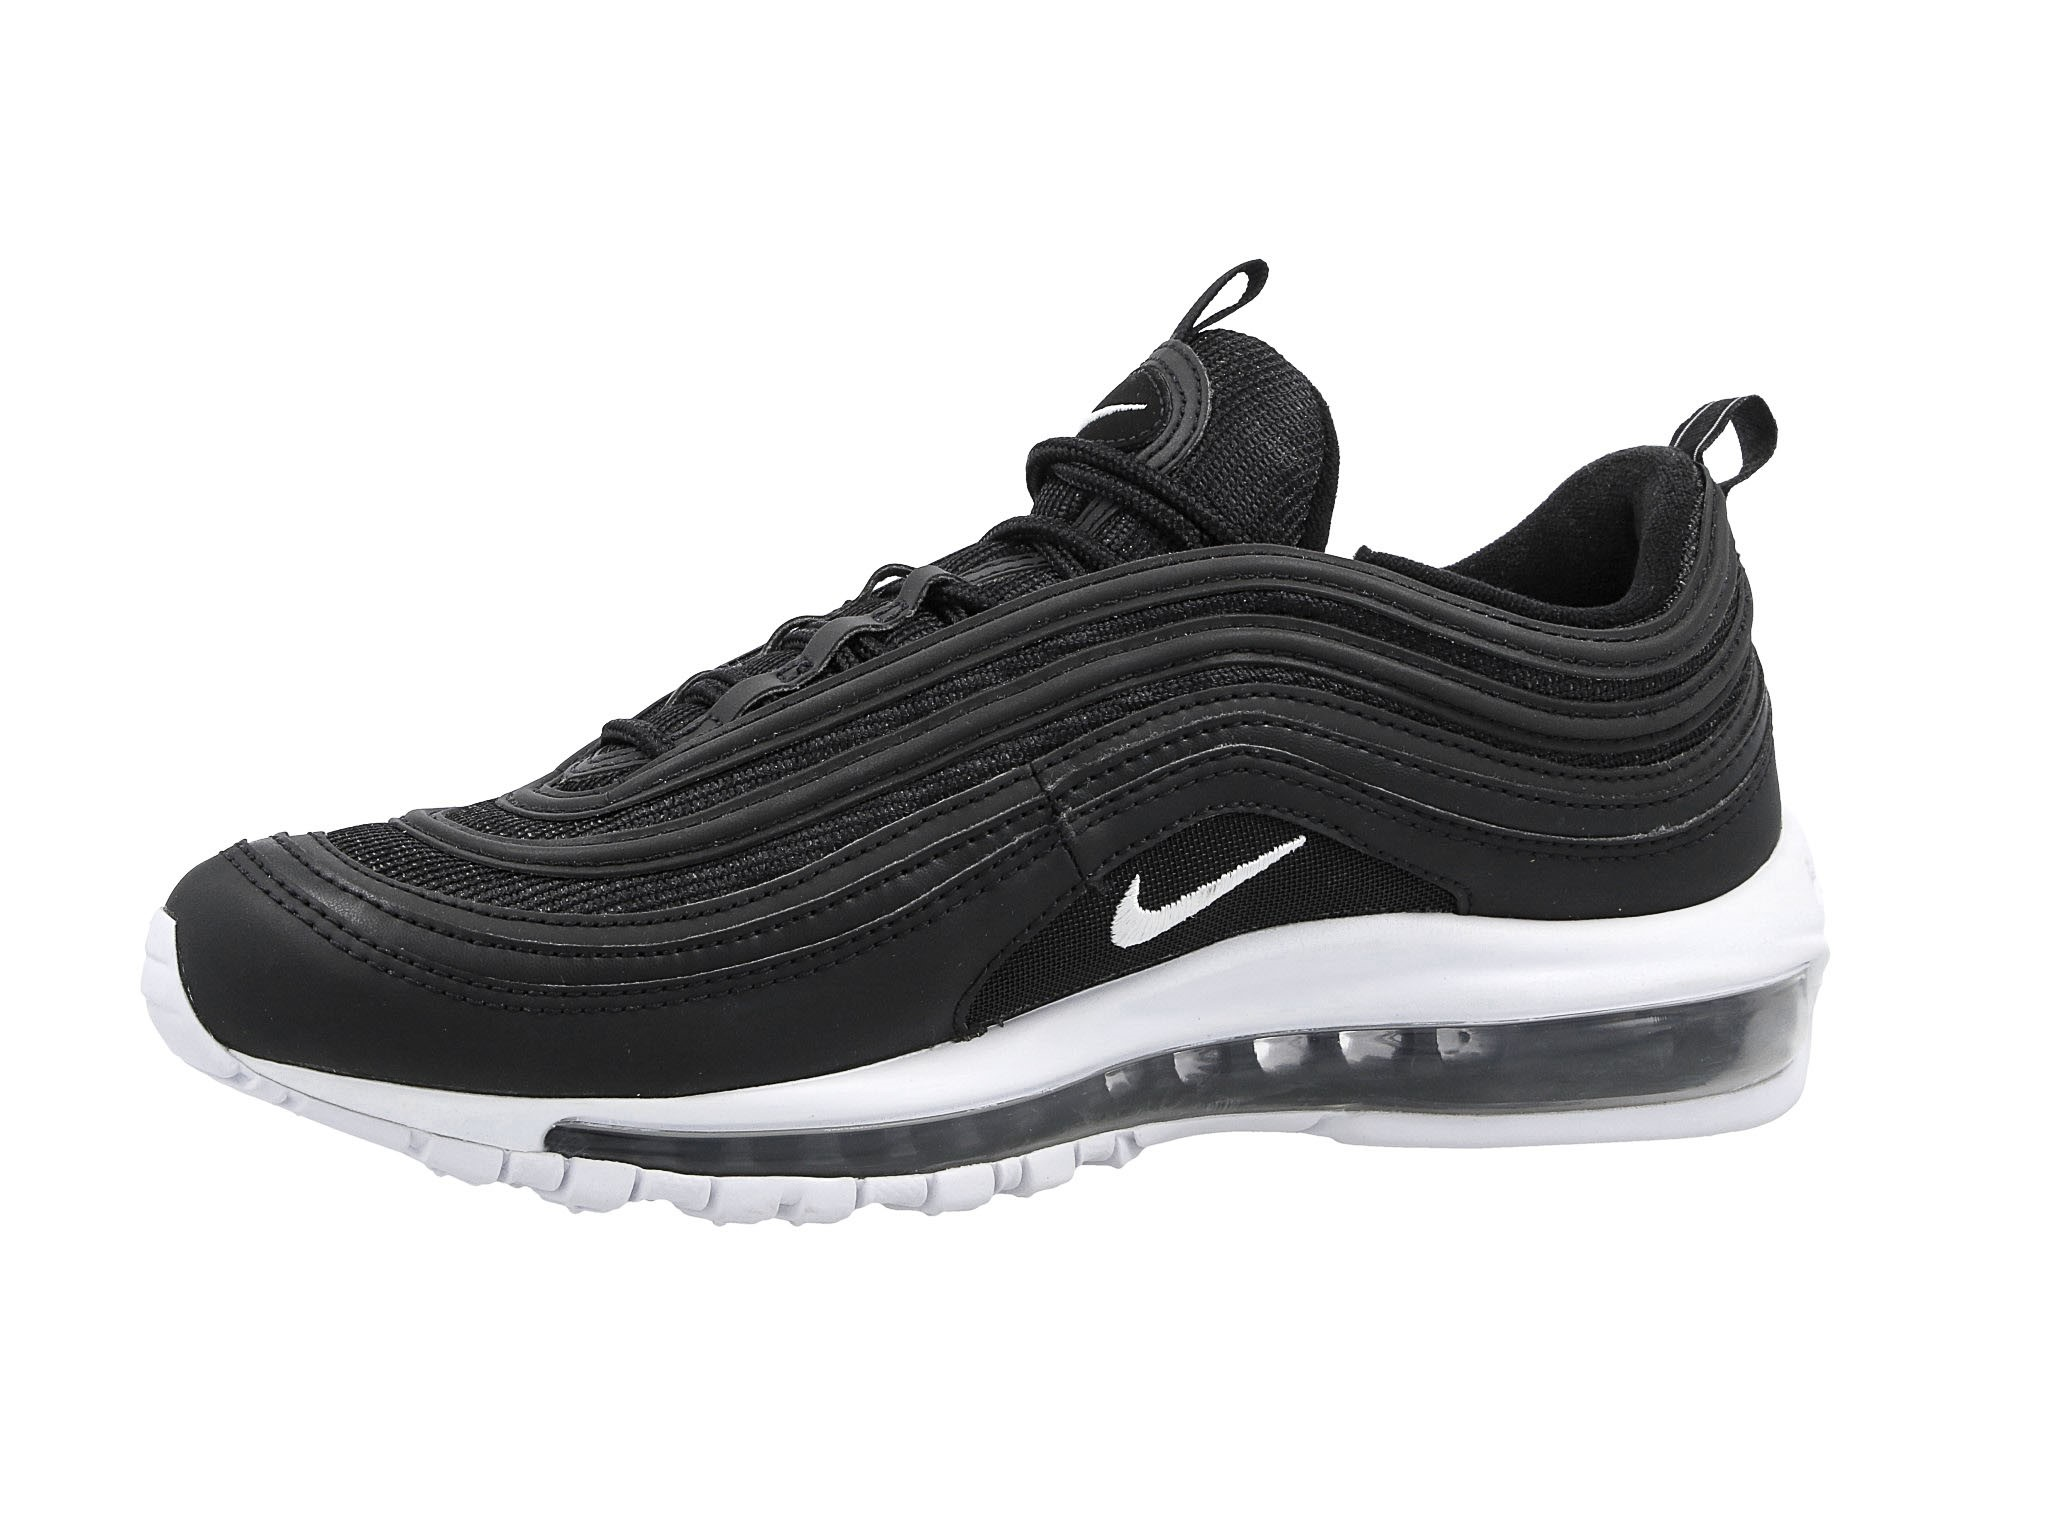 Cheap Nike Air Max 97 Cheap Nike 921826 001 blackwhite